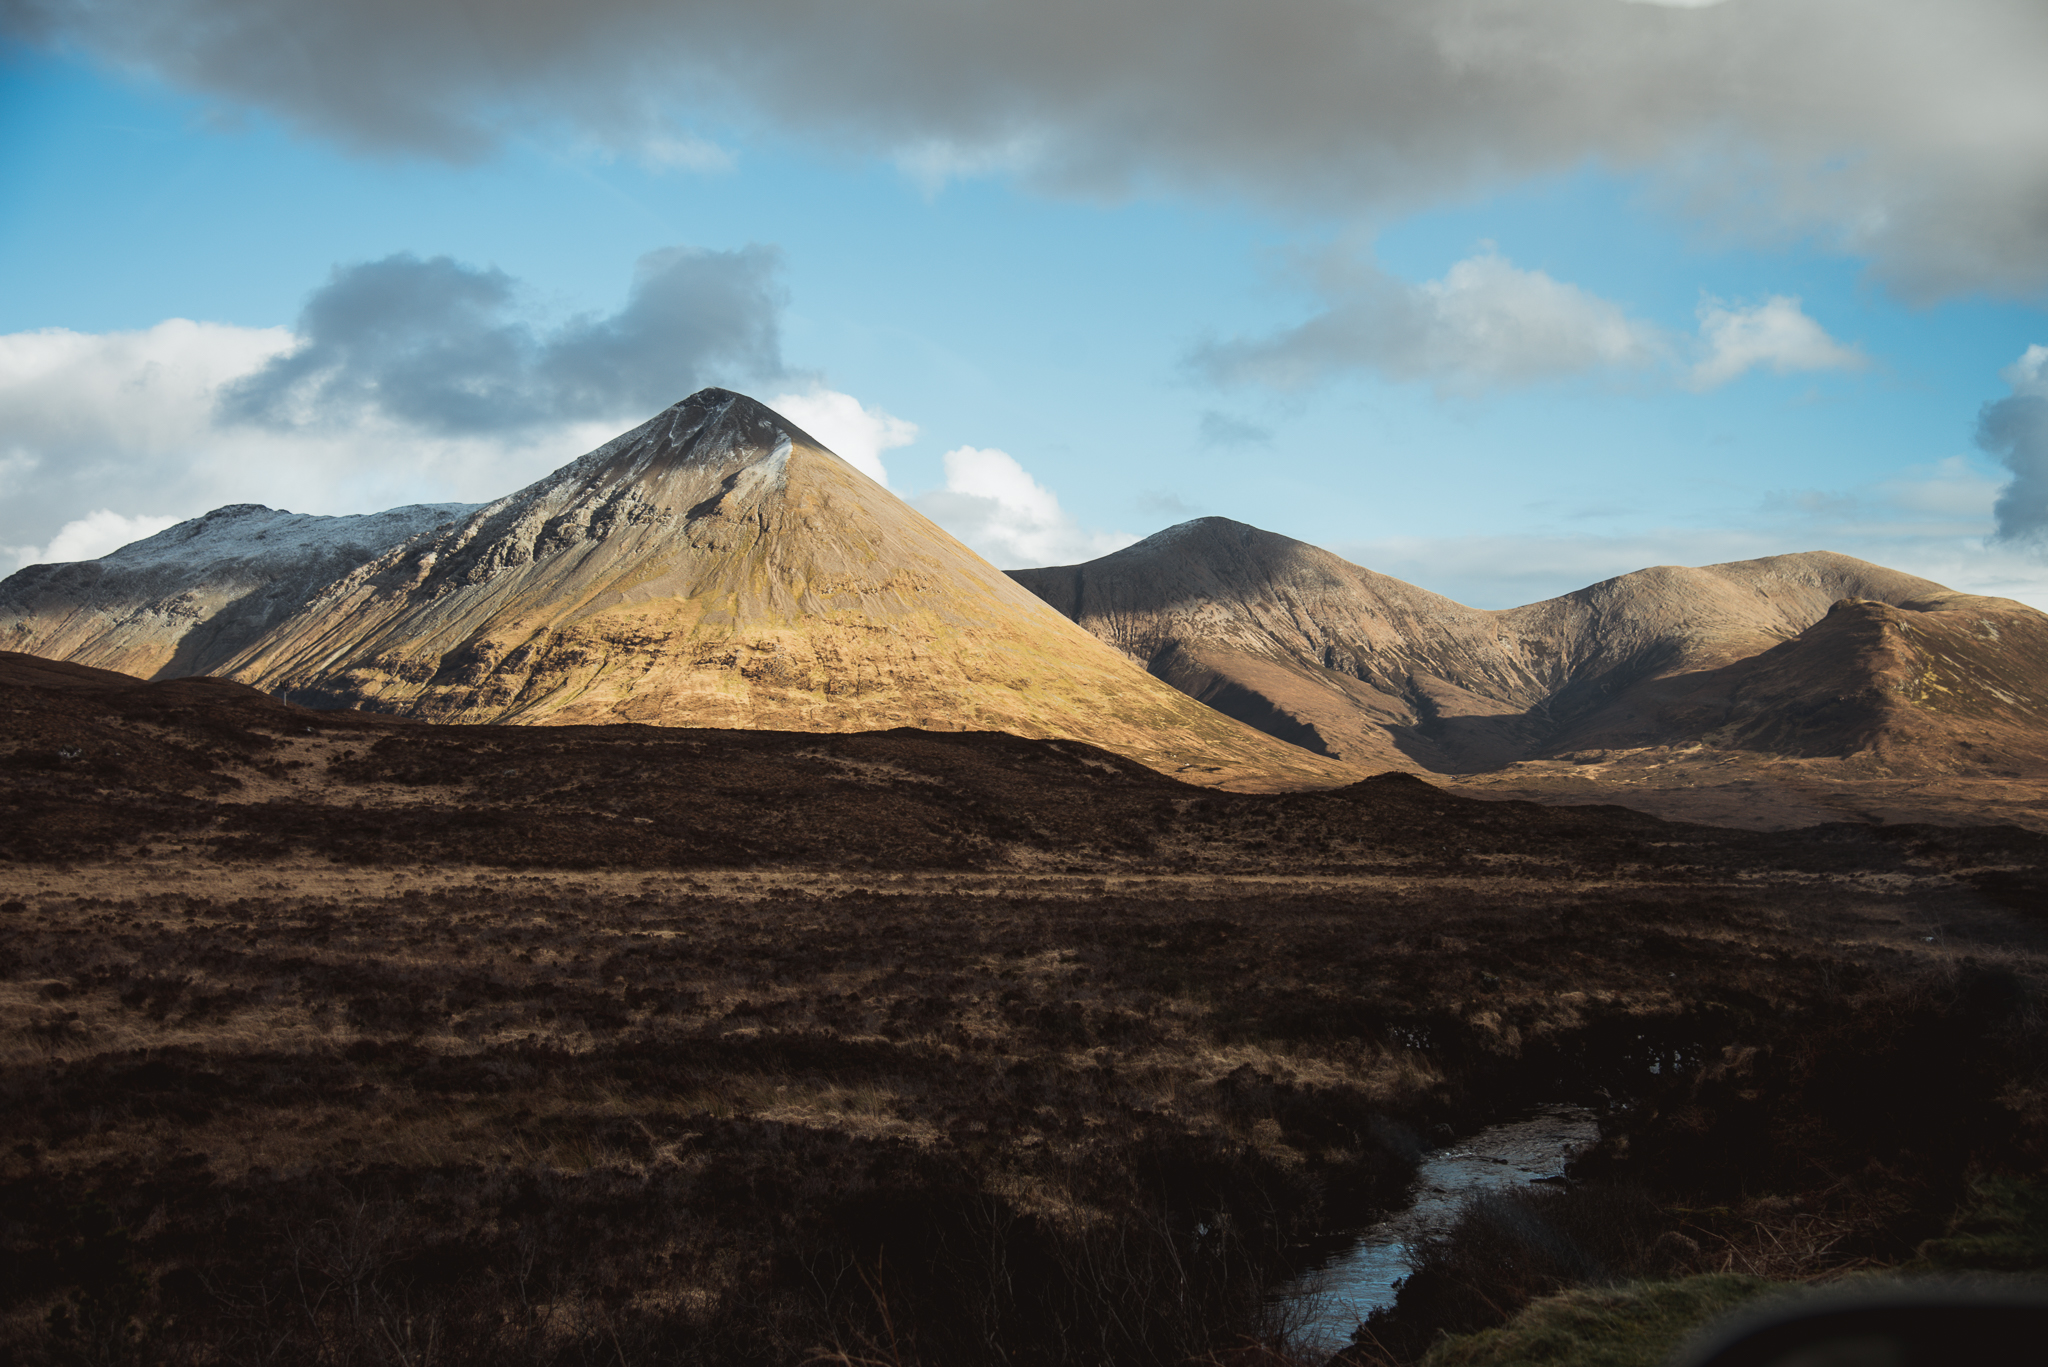 isle of skye, scotland, roadtrip, landscape, mountain